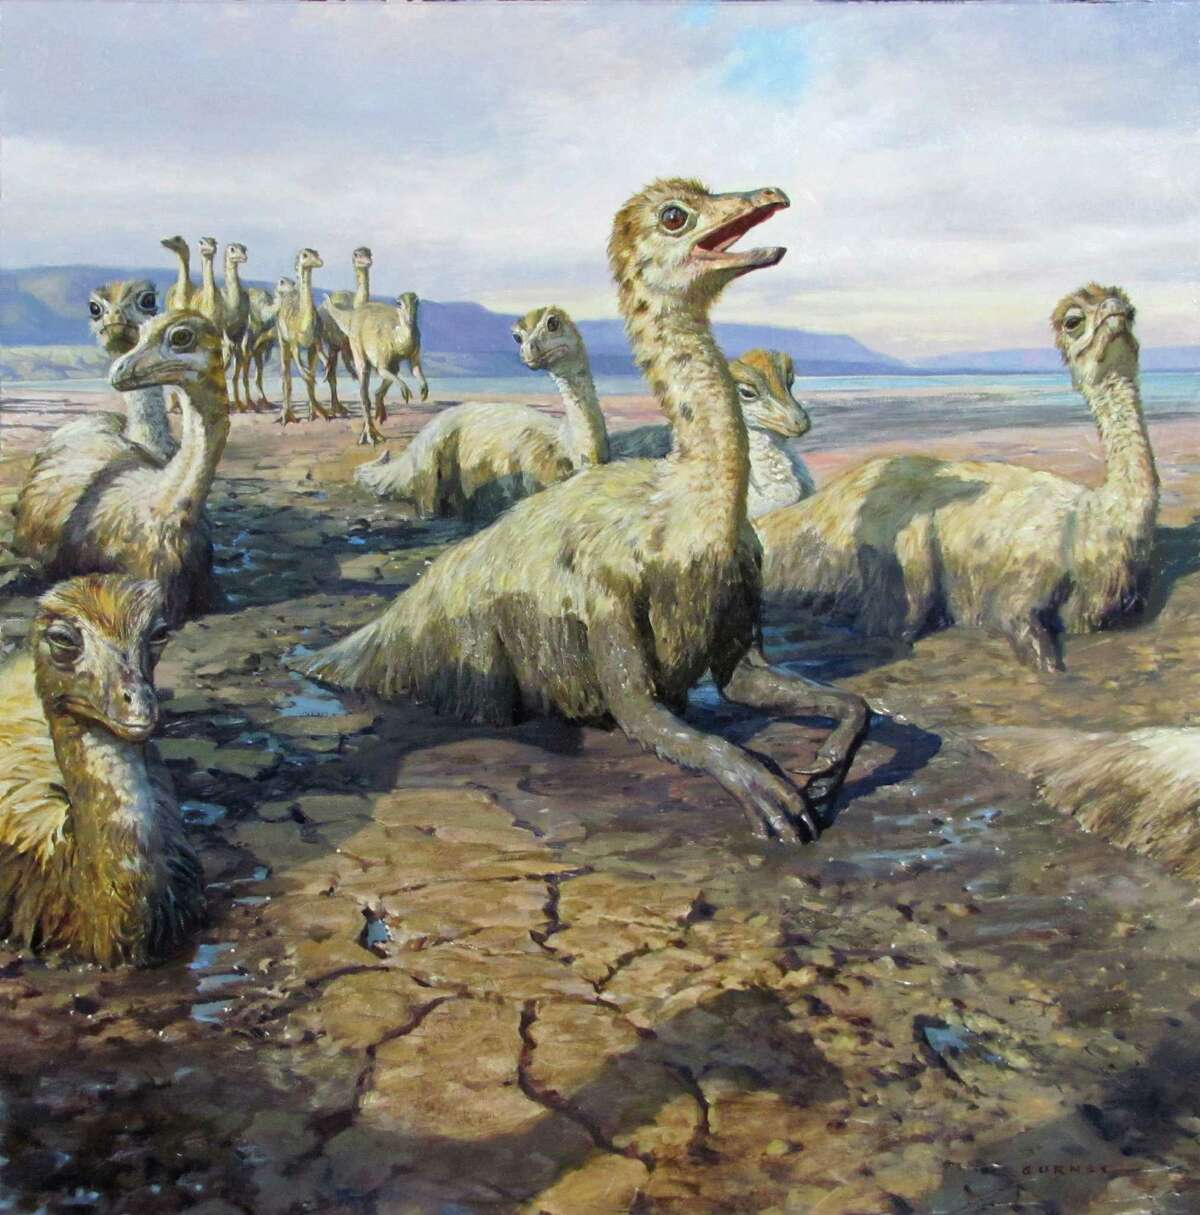 STATE MUSEUM ?Sinornithomimus dongi? (detail; oil on illustration board) by James Gurney is among the works in ?Focus on Nature XII? at the State Museum, Albany, through Dec. 31.